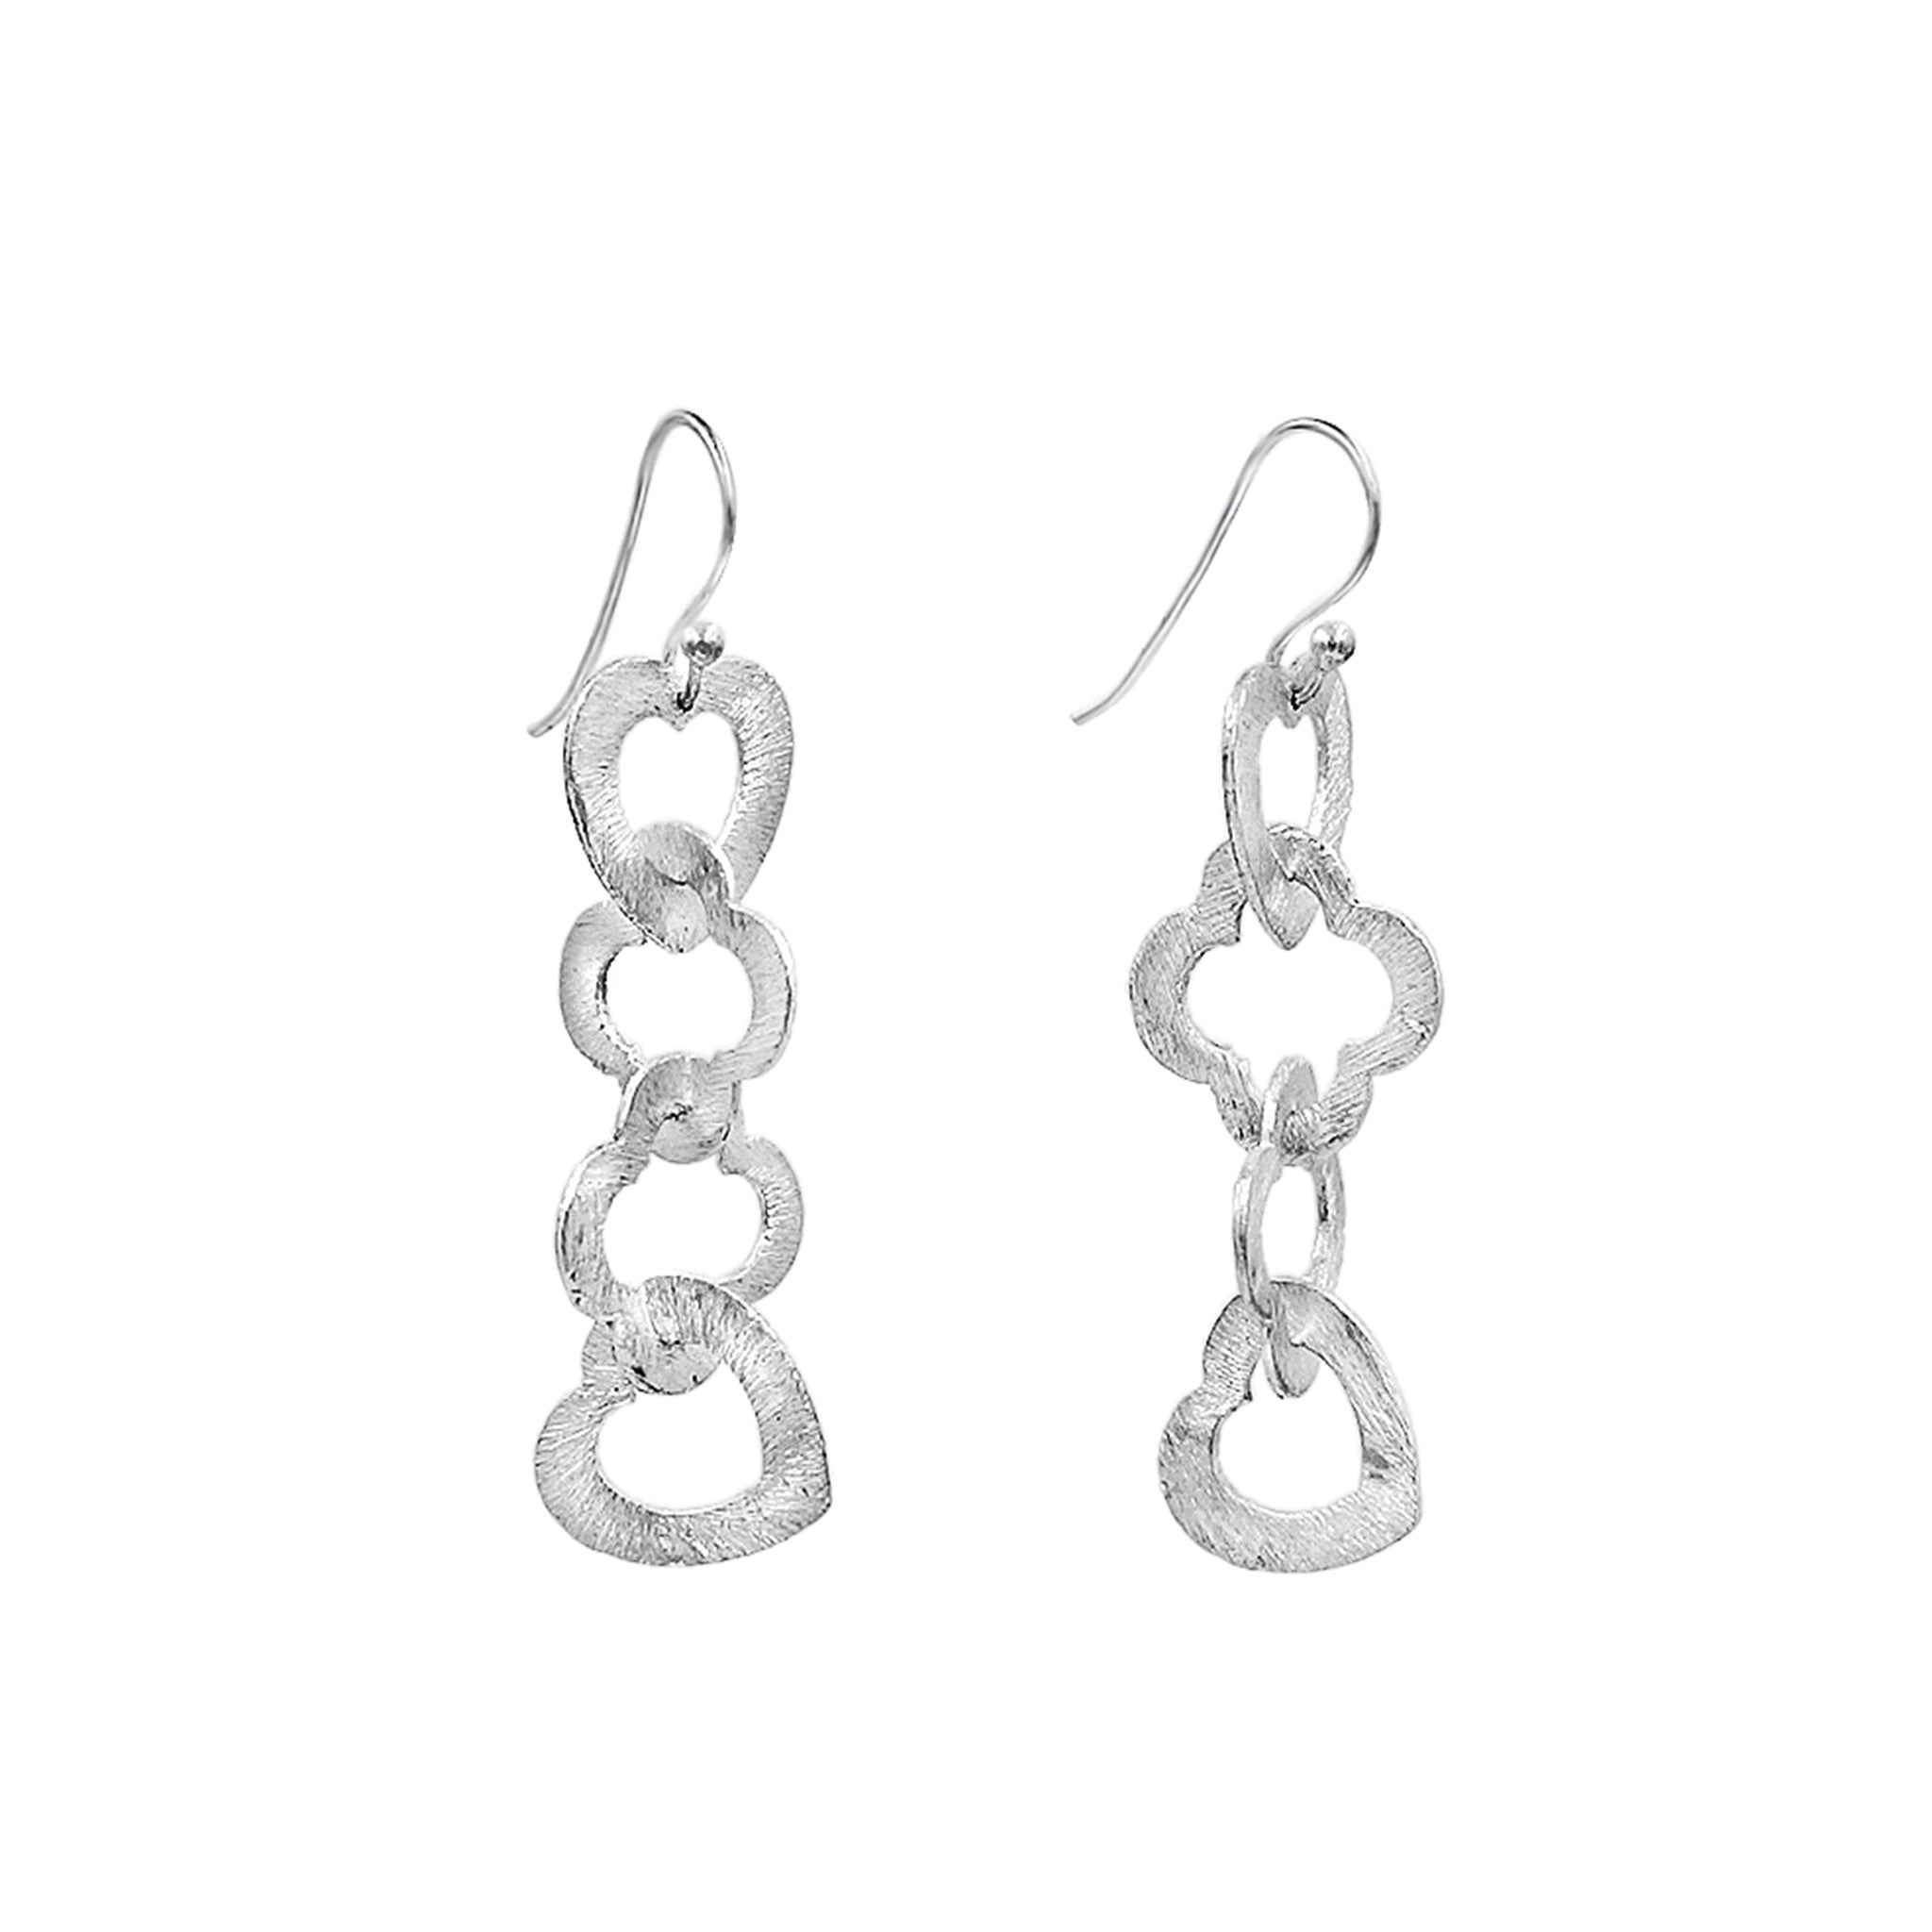 Open heart silver earrings - Sati Gems Hawaii